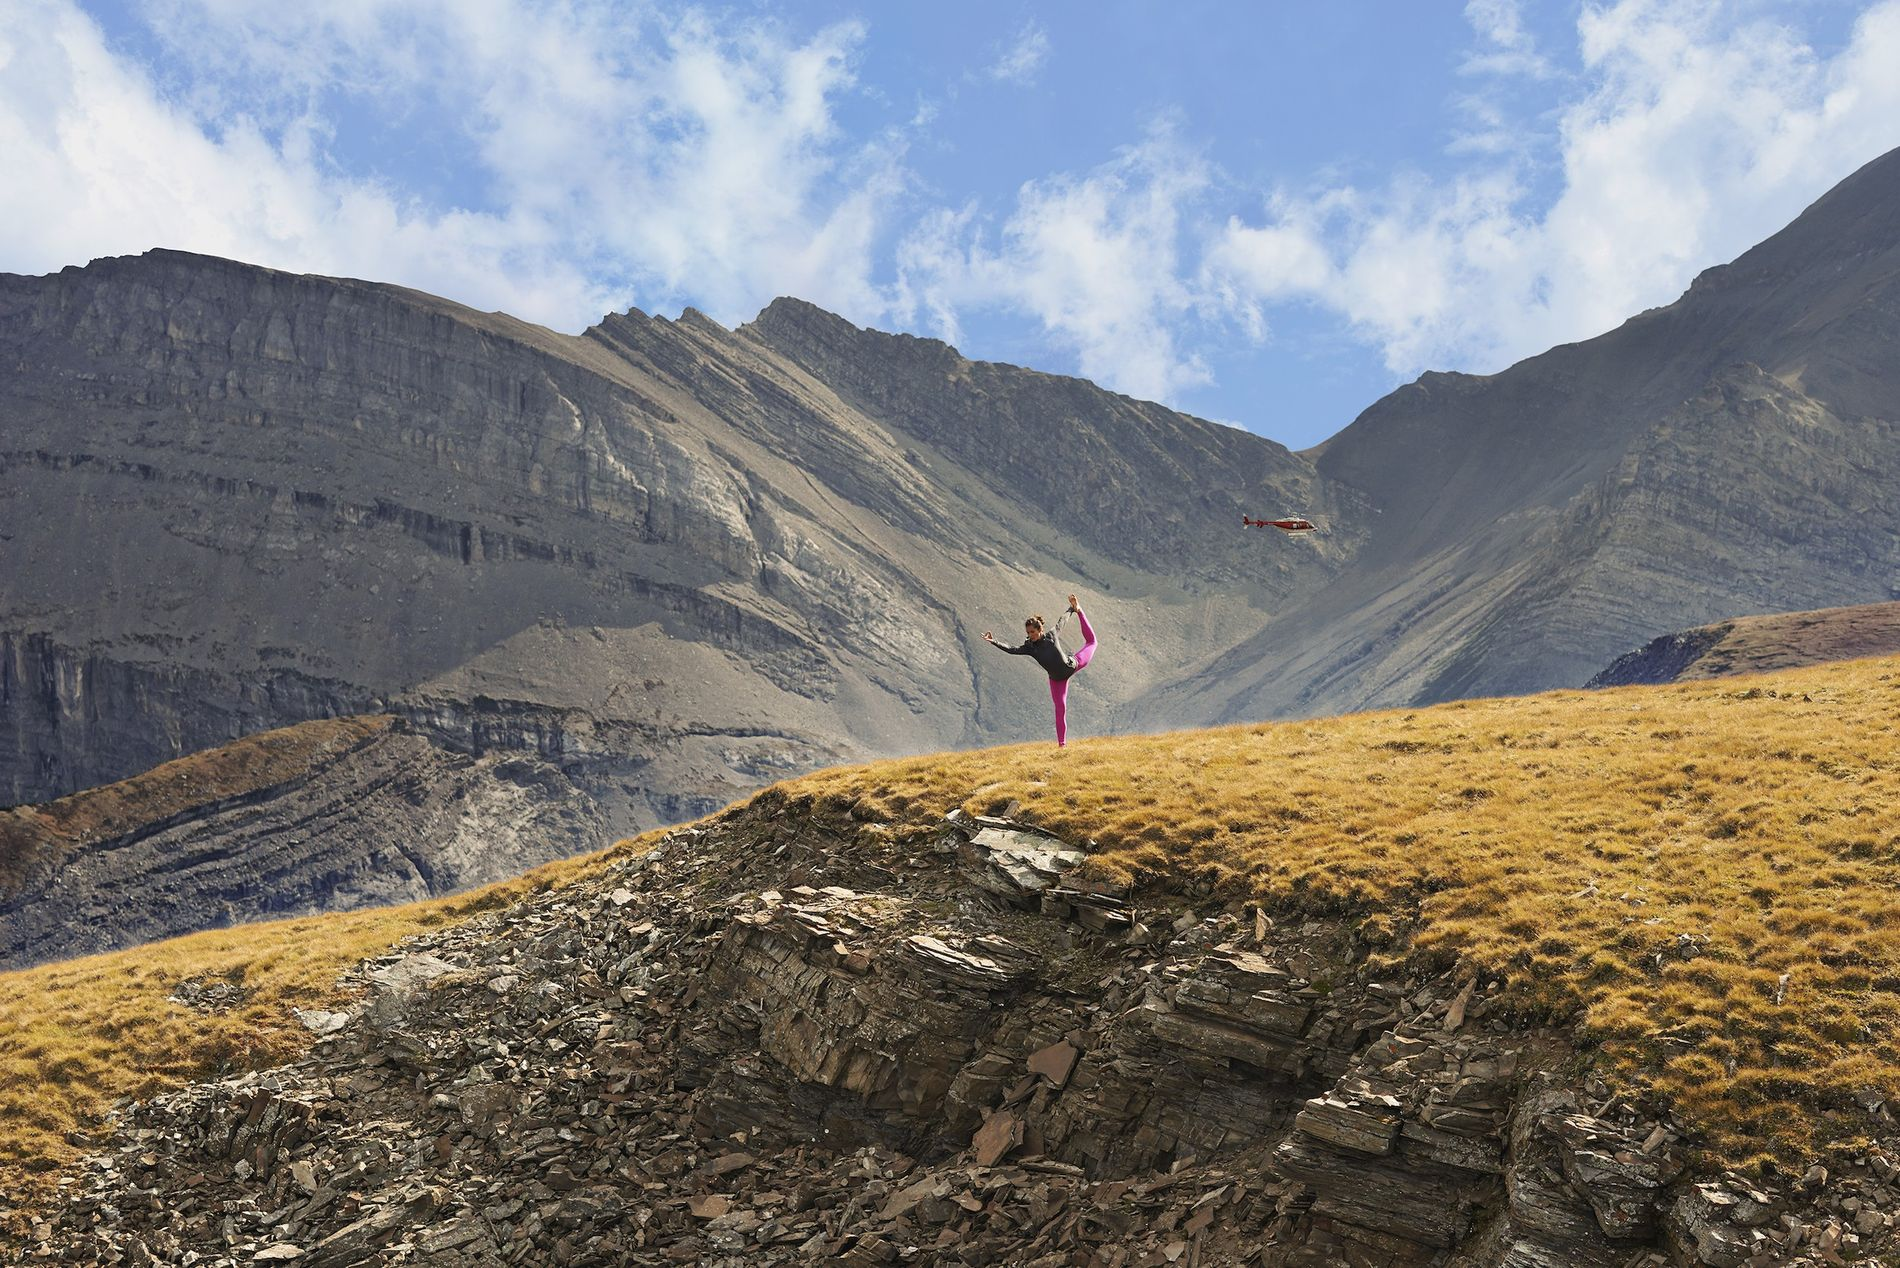 A mountaintop Hatha yoga session in the Canadian Rockies.